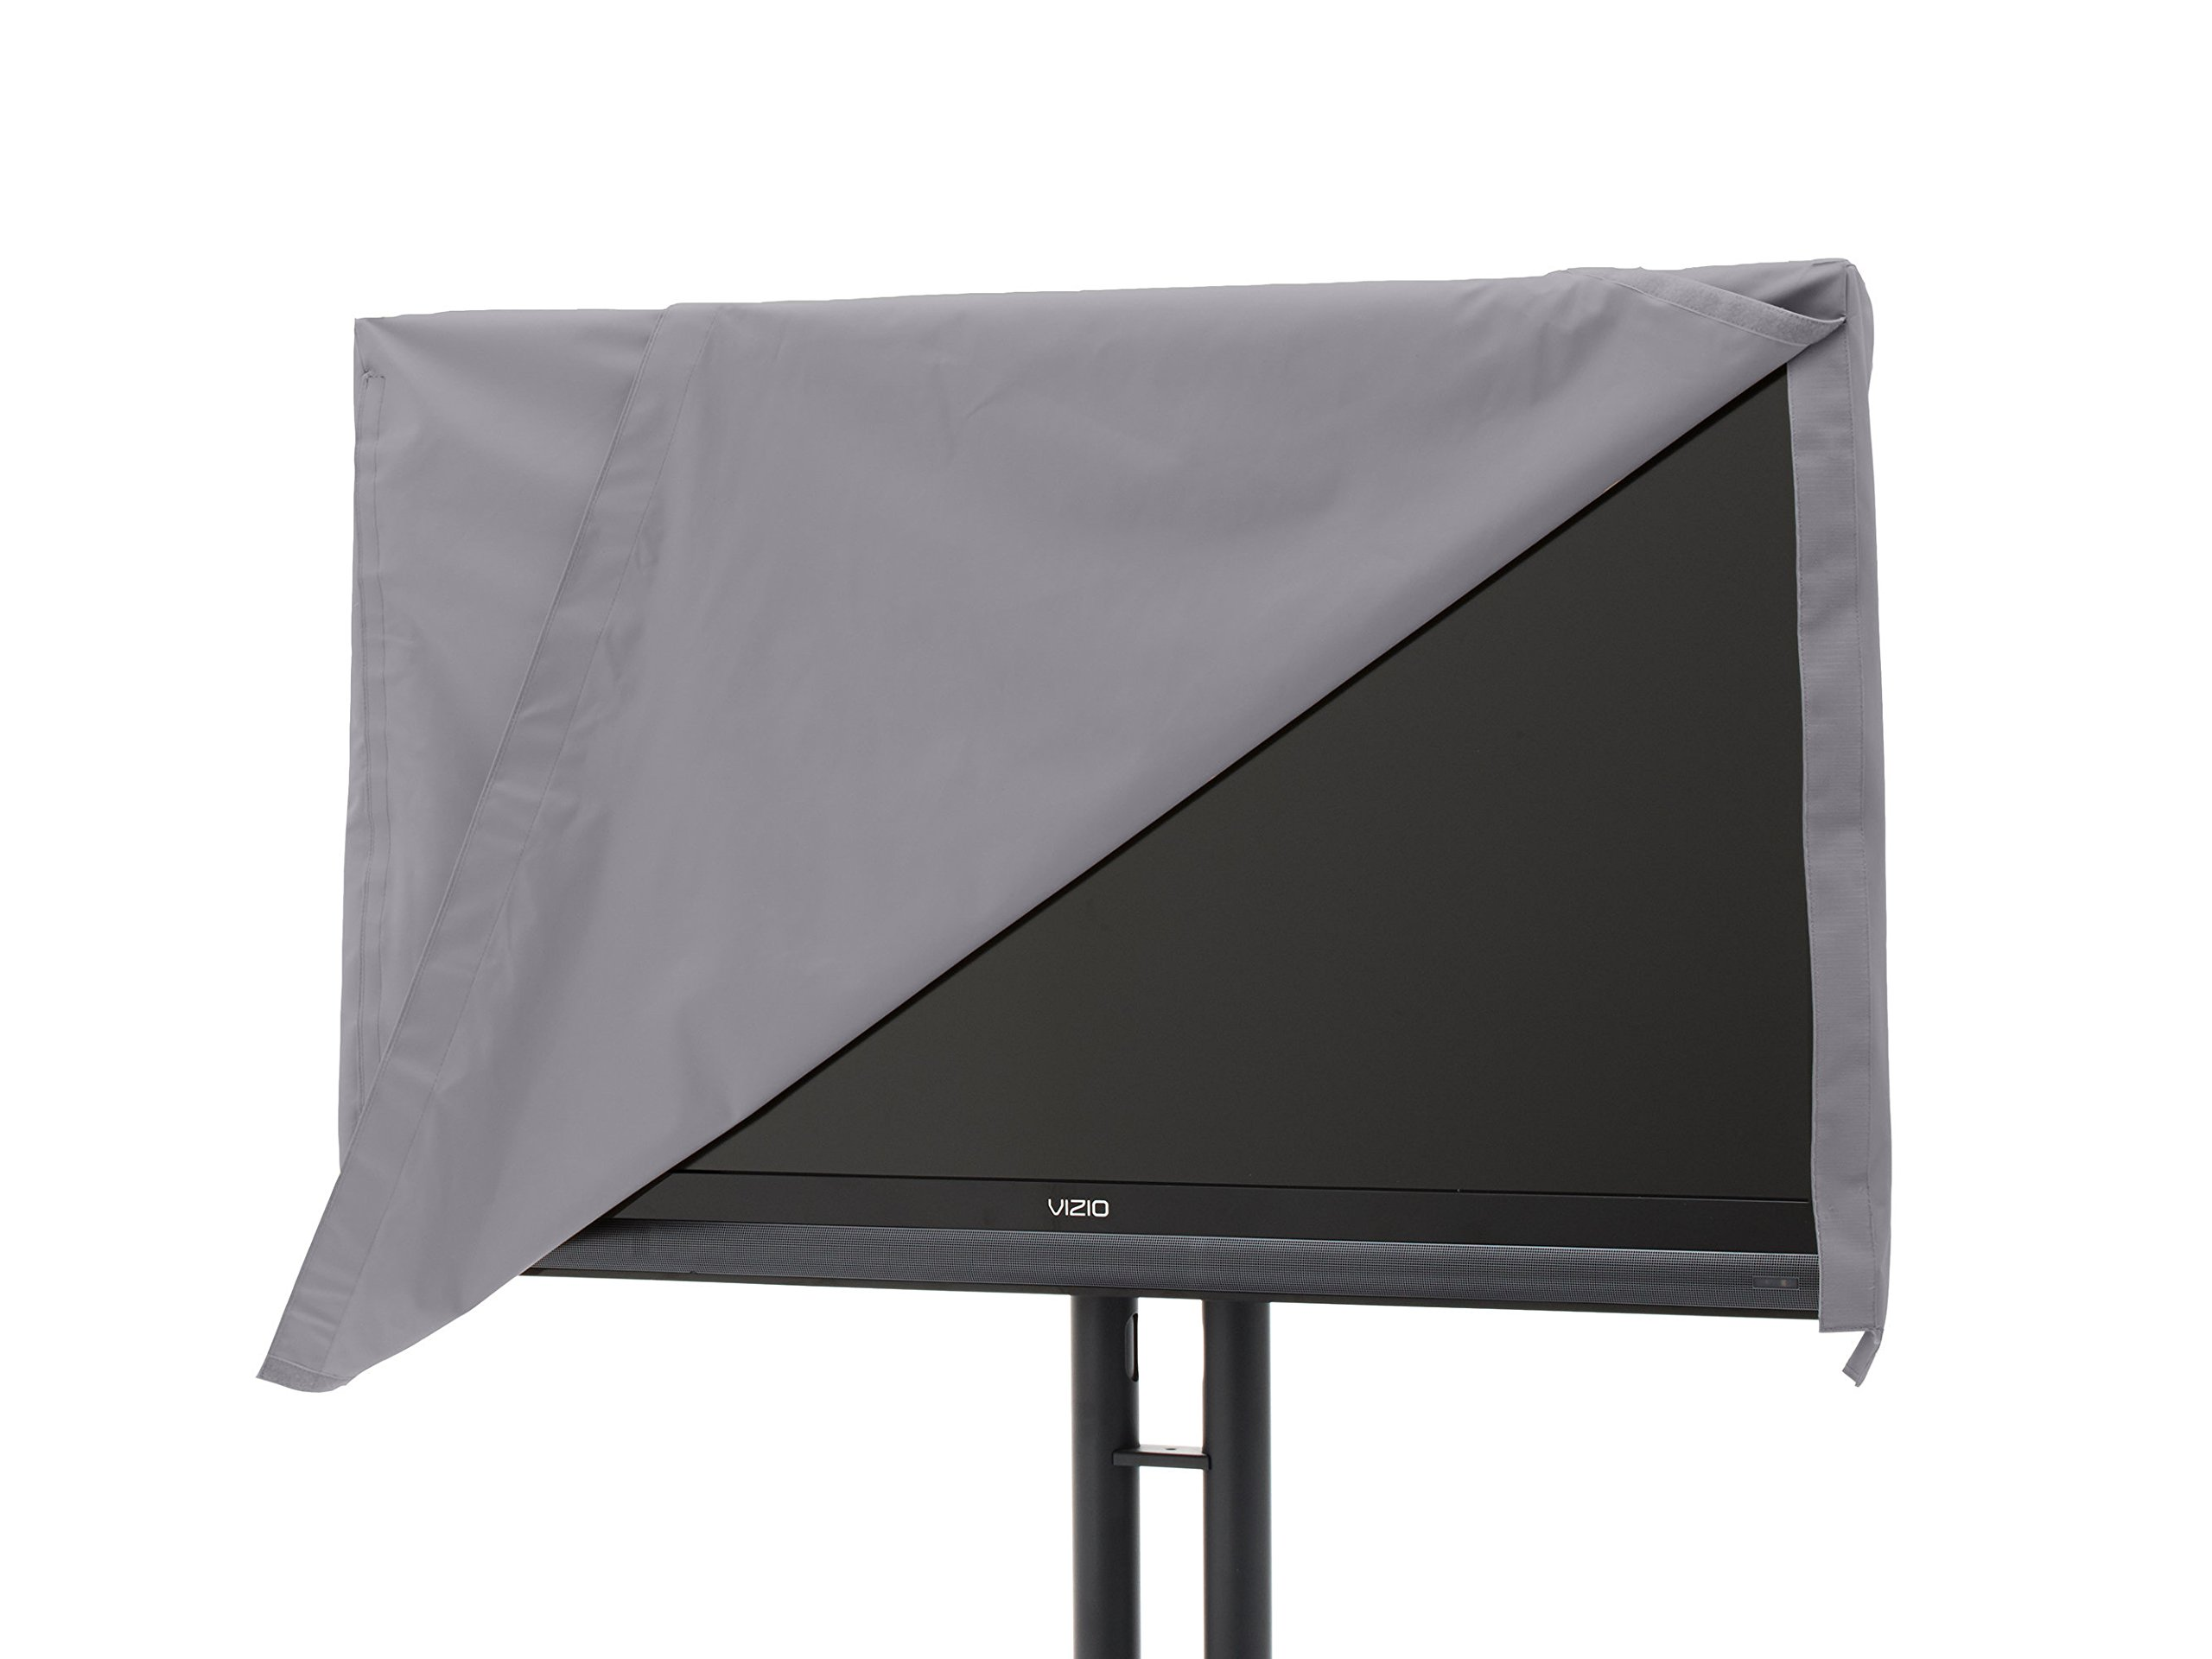 Covermates - Outdoor TV Cover - Fits 65 to 68 Inch TV's - Elite - 300 Denier Stock-Dyed Polyester - Full Coverage - Front Flip Top for Quick Viewing - 3 Year Warranty - Water Resistant - Charcoal